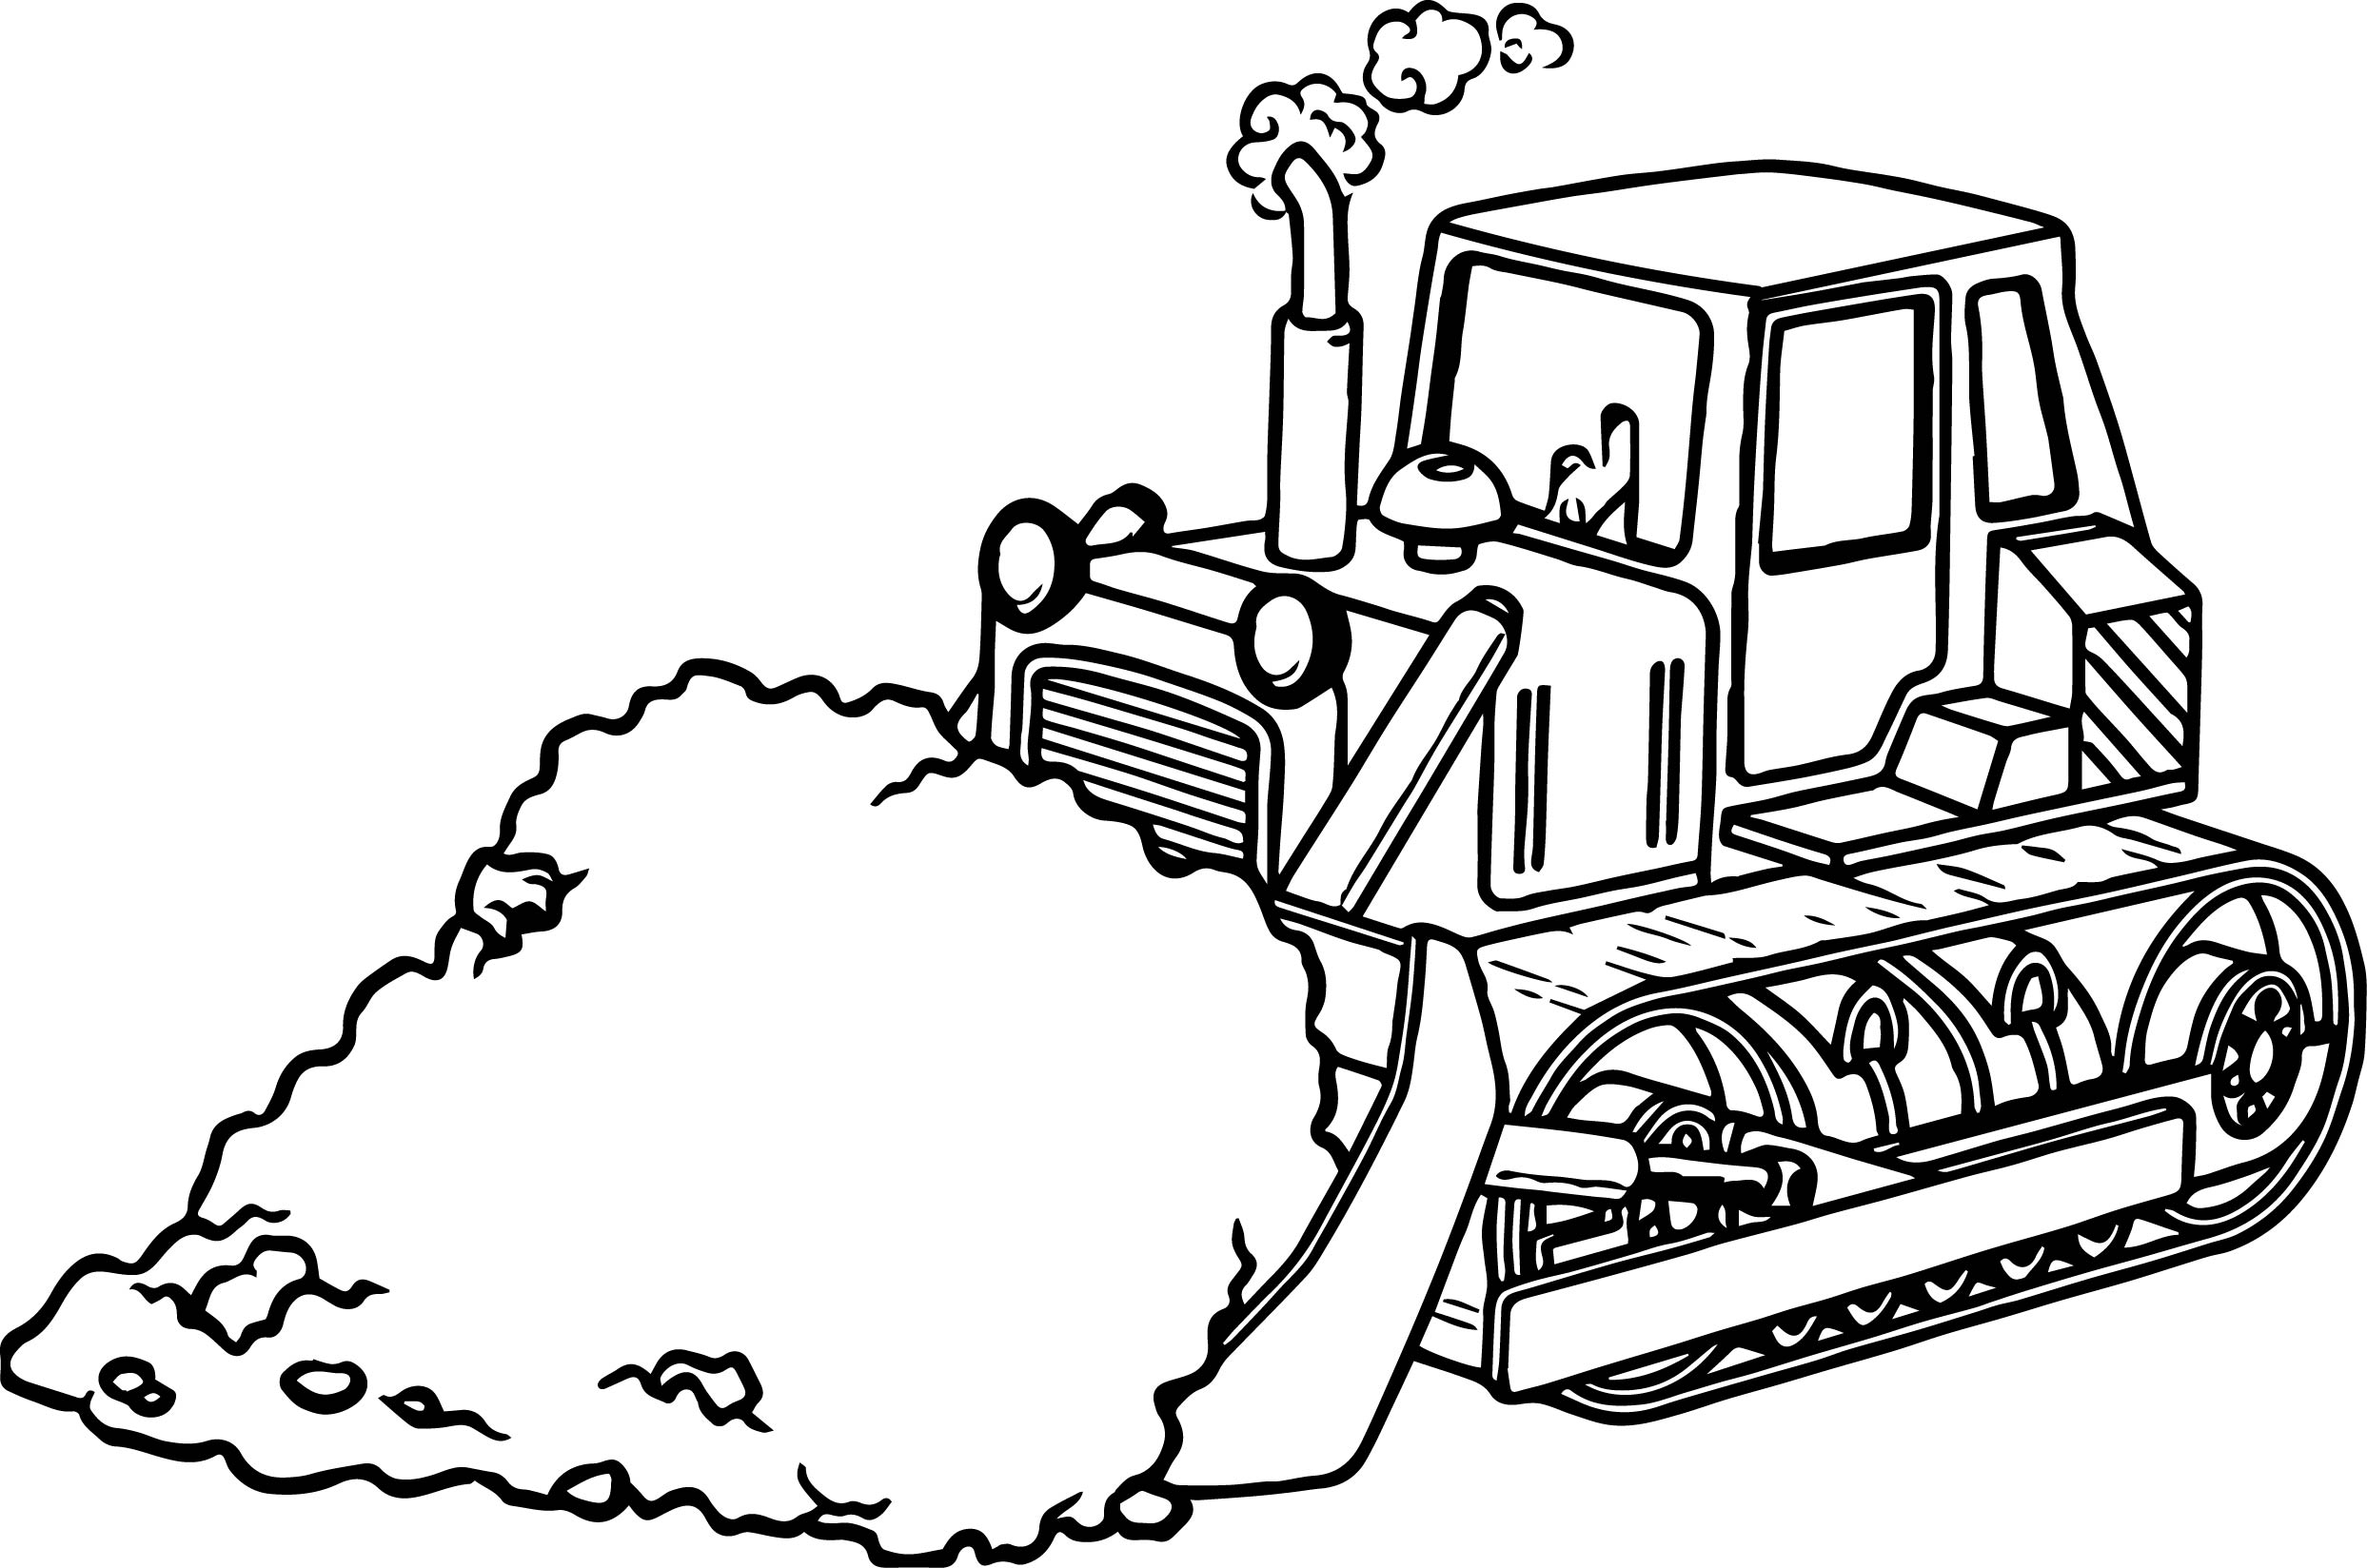 Construction Equipment Drawing at GetDrawings.com | Free ...